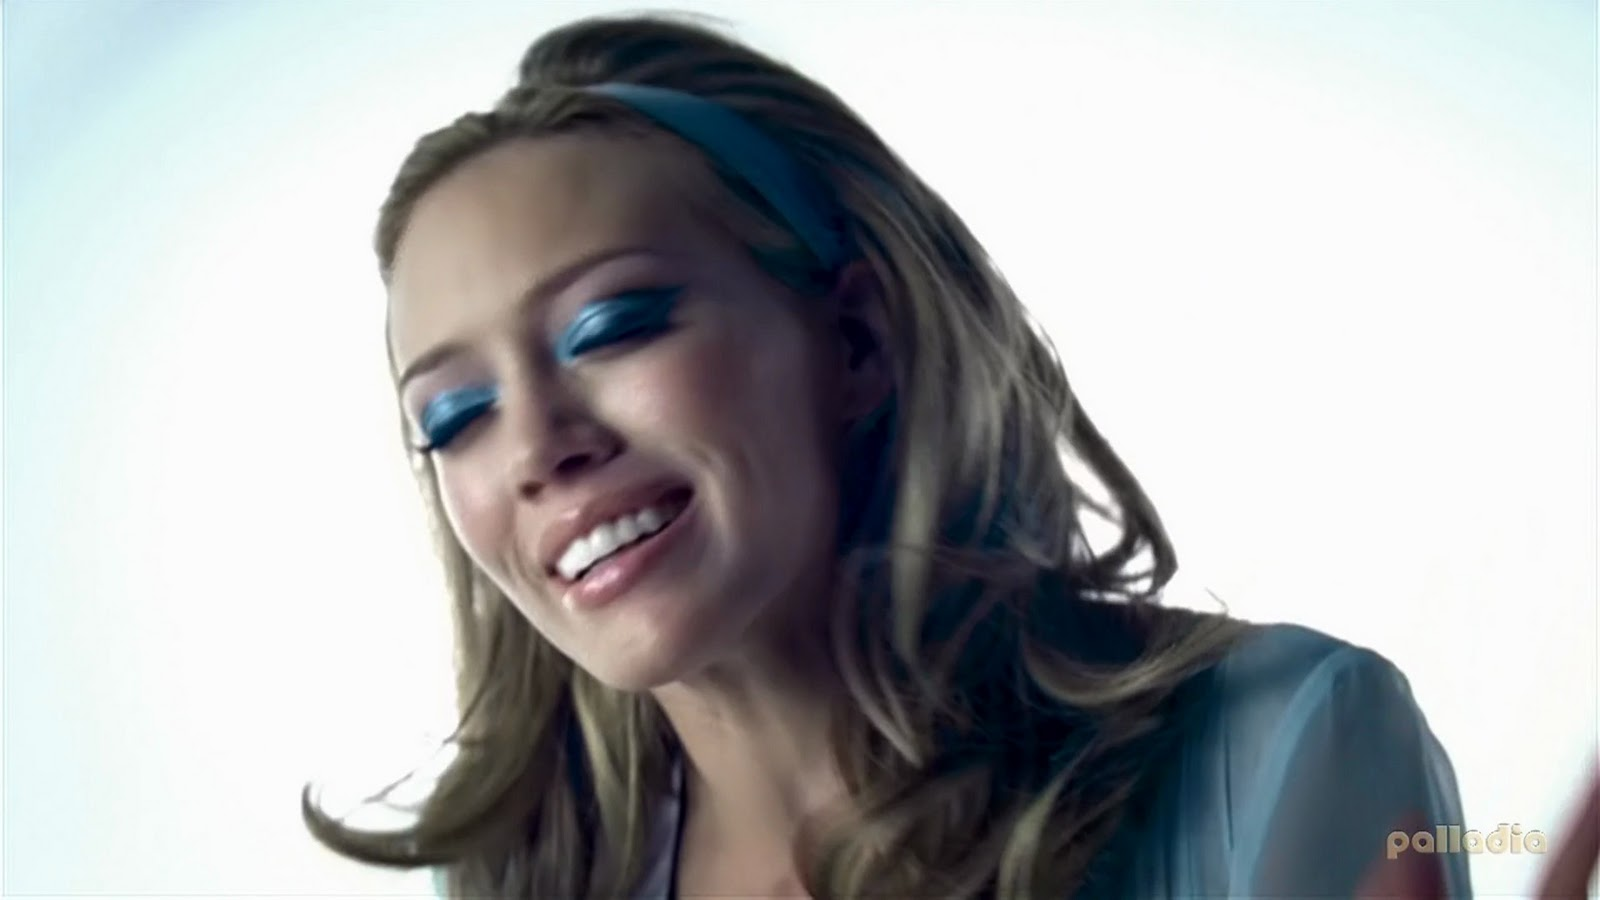 hilary duff makeup tutorial - photo #13